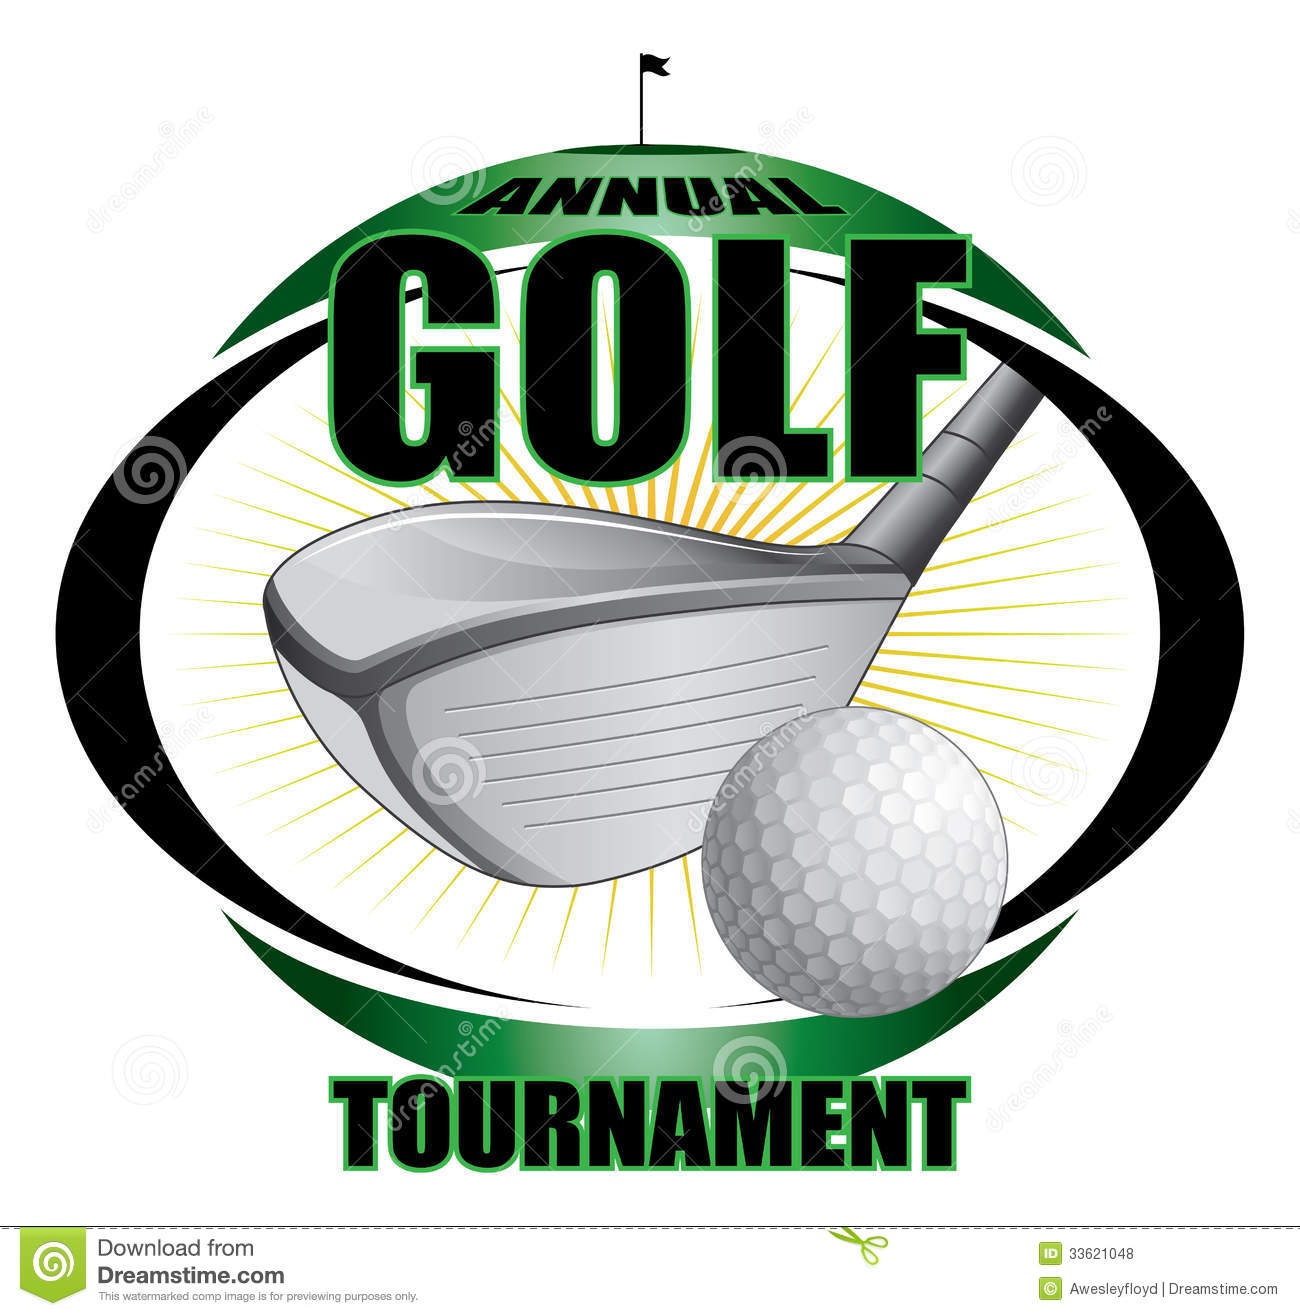 Illustration of a golf tournament design. Contains golf clubs and golf ...